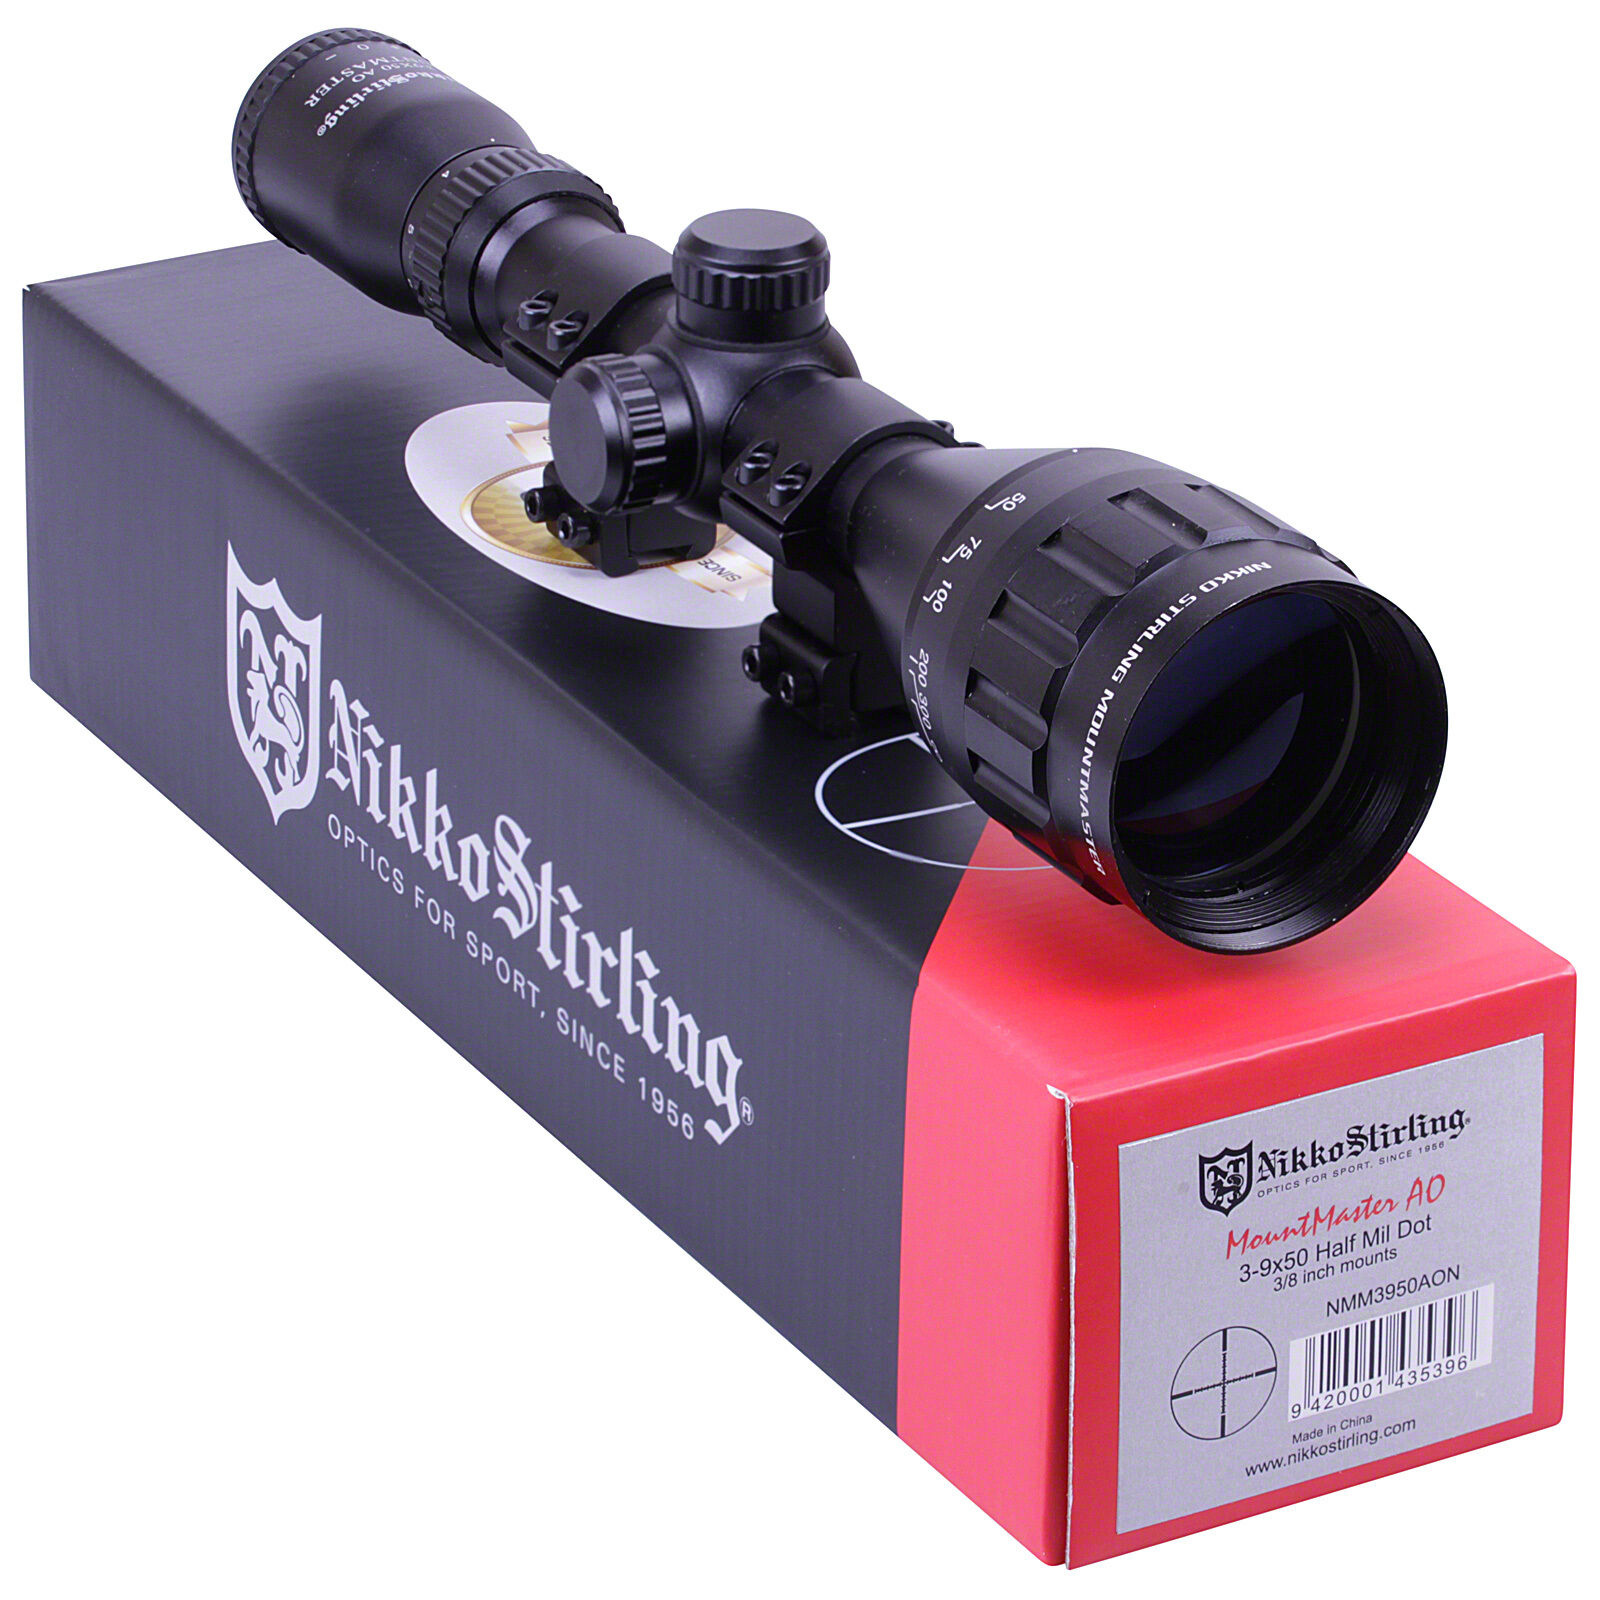 Nikko MOUNTMASTER 3-9x50 PX Parallax AO Rifle SCOPE Sight with 3 8 11mm MOUNTS